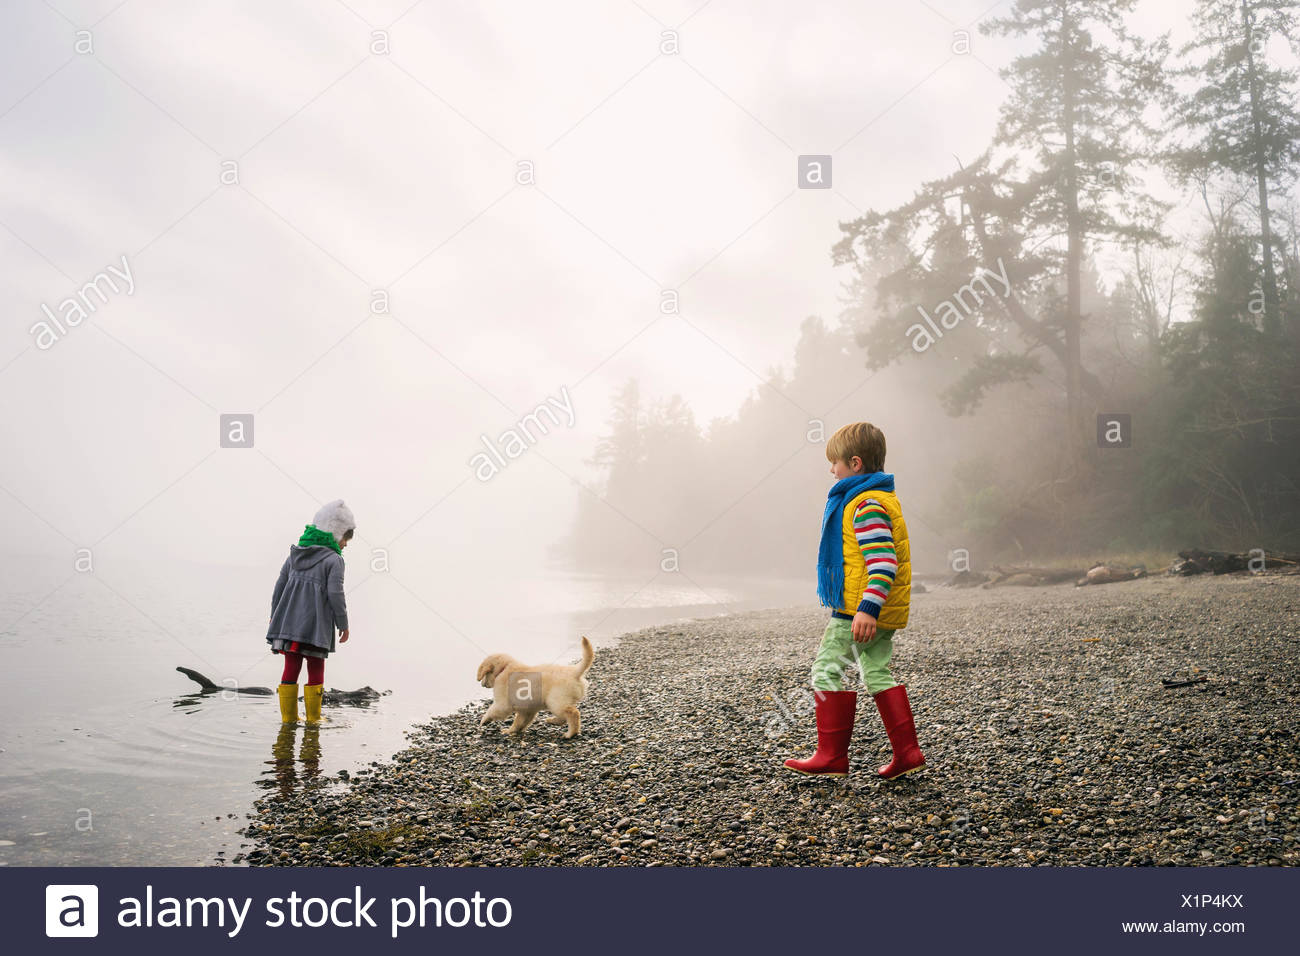 Boy and girl playing with golden retriever puppy dog on foggy beach Stock Photo